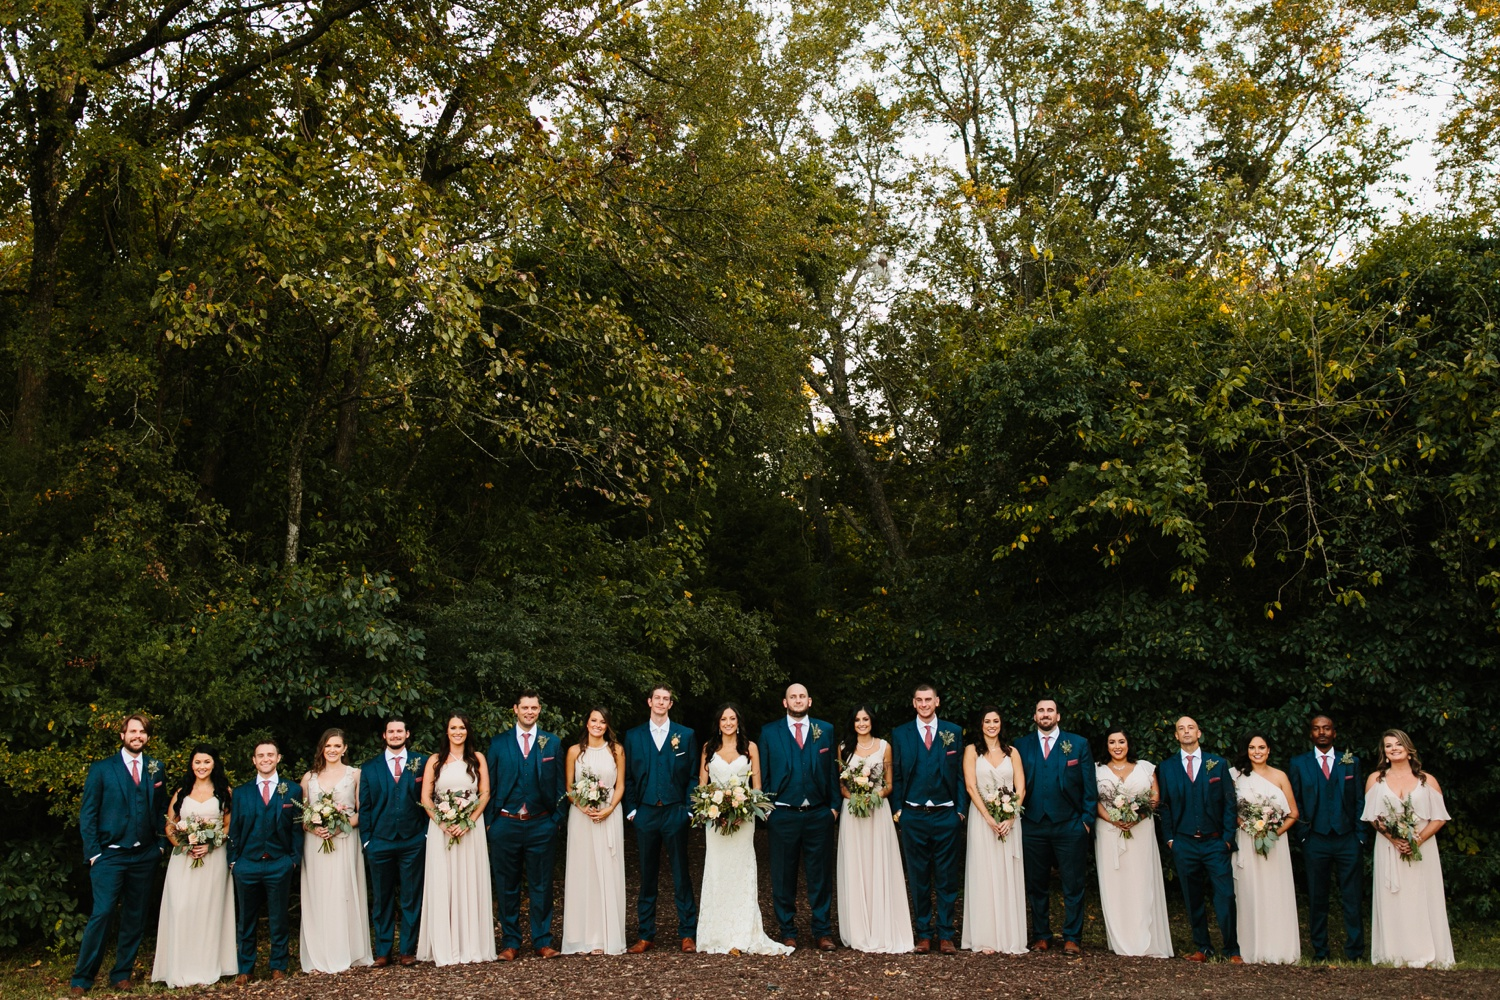 Erica + Henry | a bohemian inspired wedding at Chandlers Gardens in Salina, TX by North Texas Wedding Photographer Rachel Meagan Photography 100